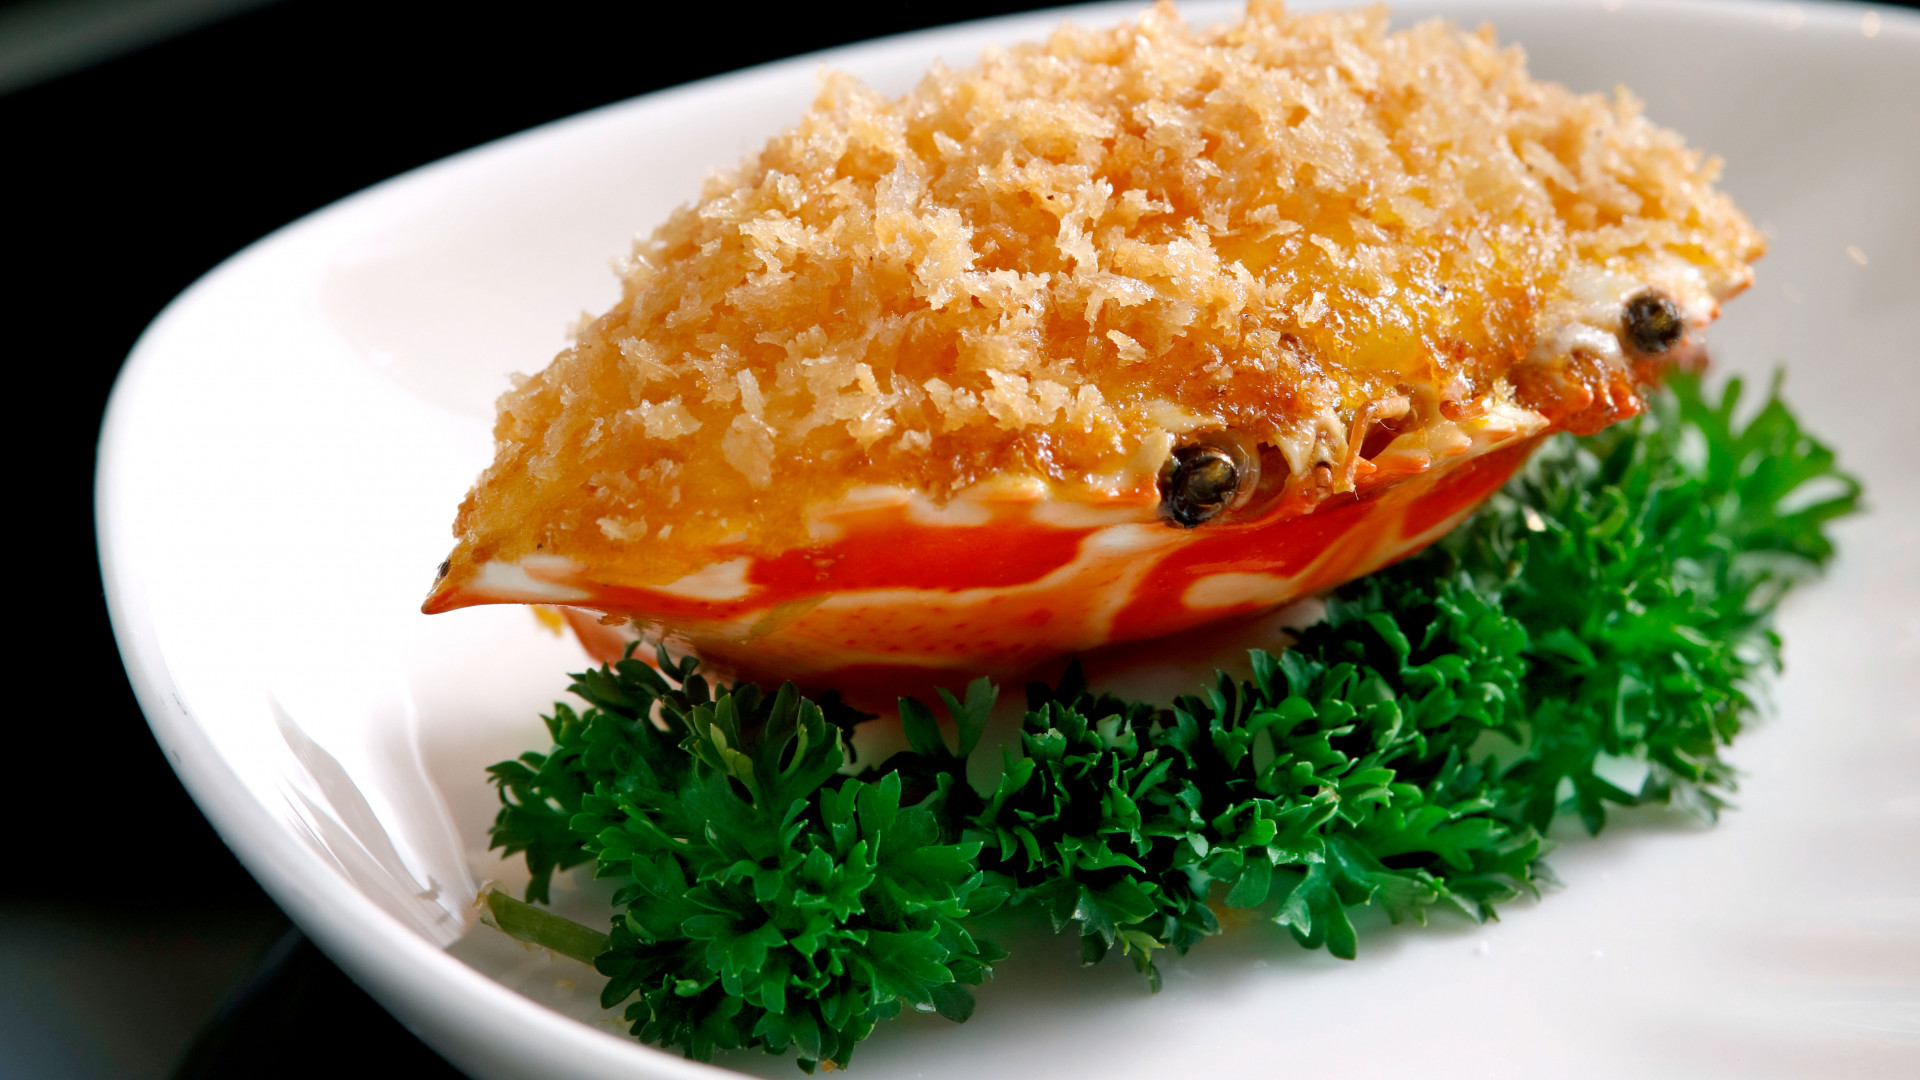 Baked crab meat, cheese and onions on crab shell